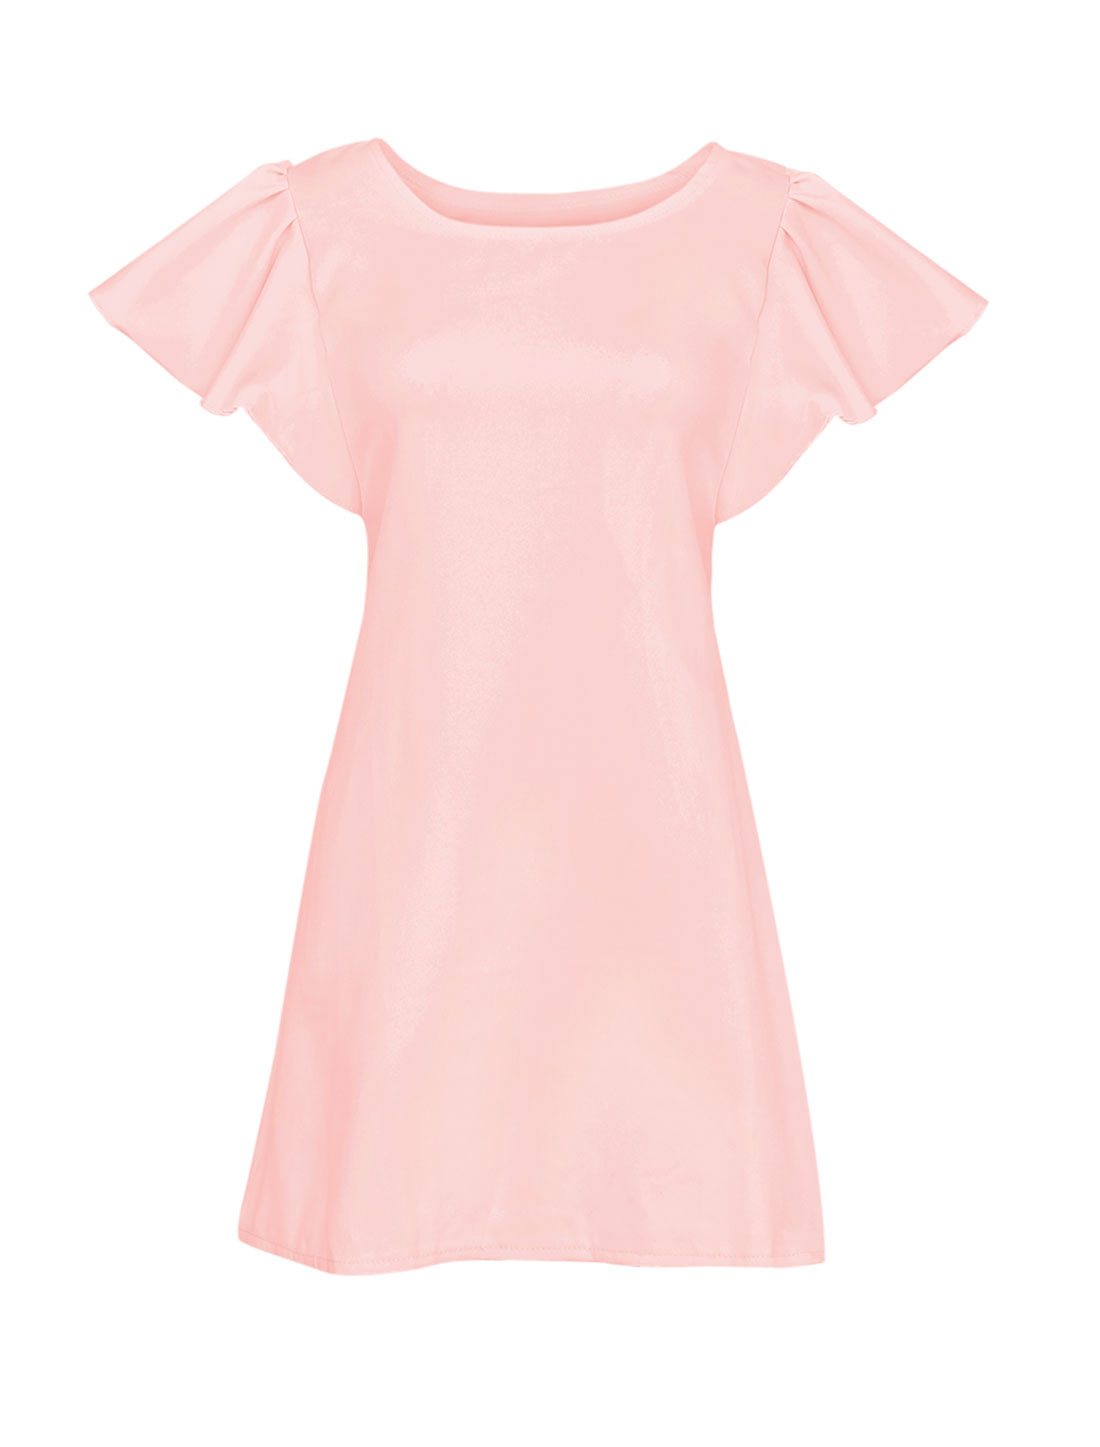 Women Round Neck Short Flouncing Sleeve Dress Pink XS